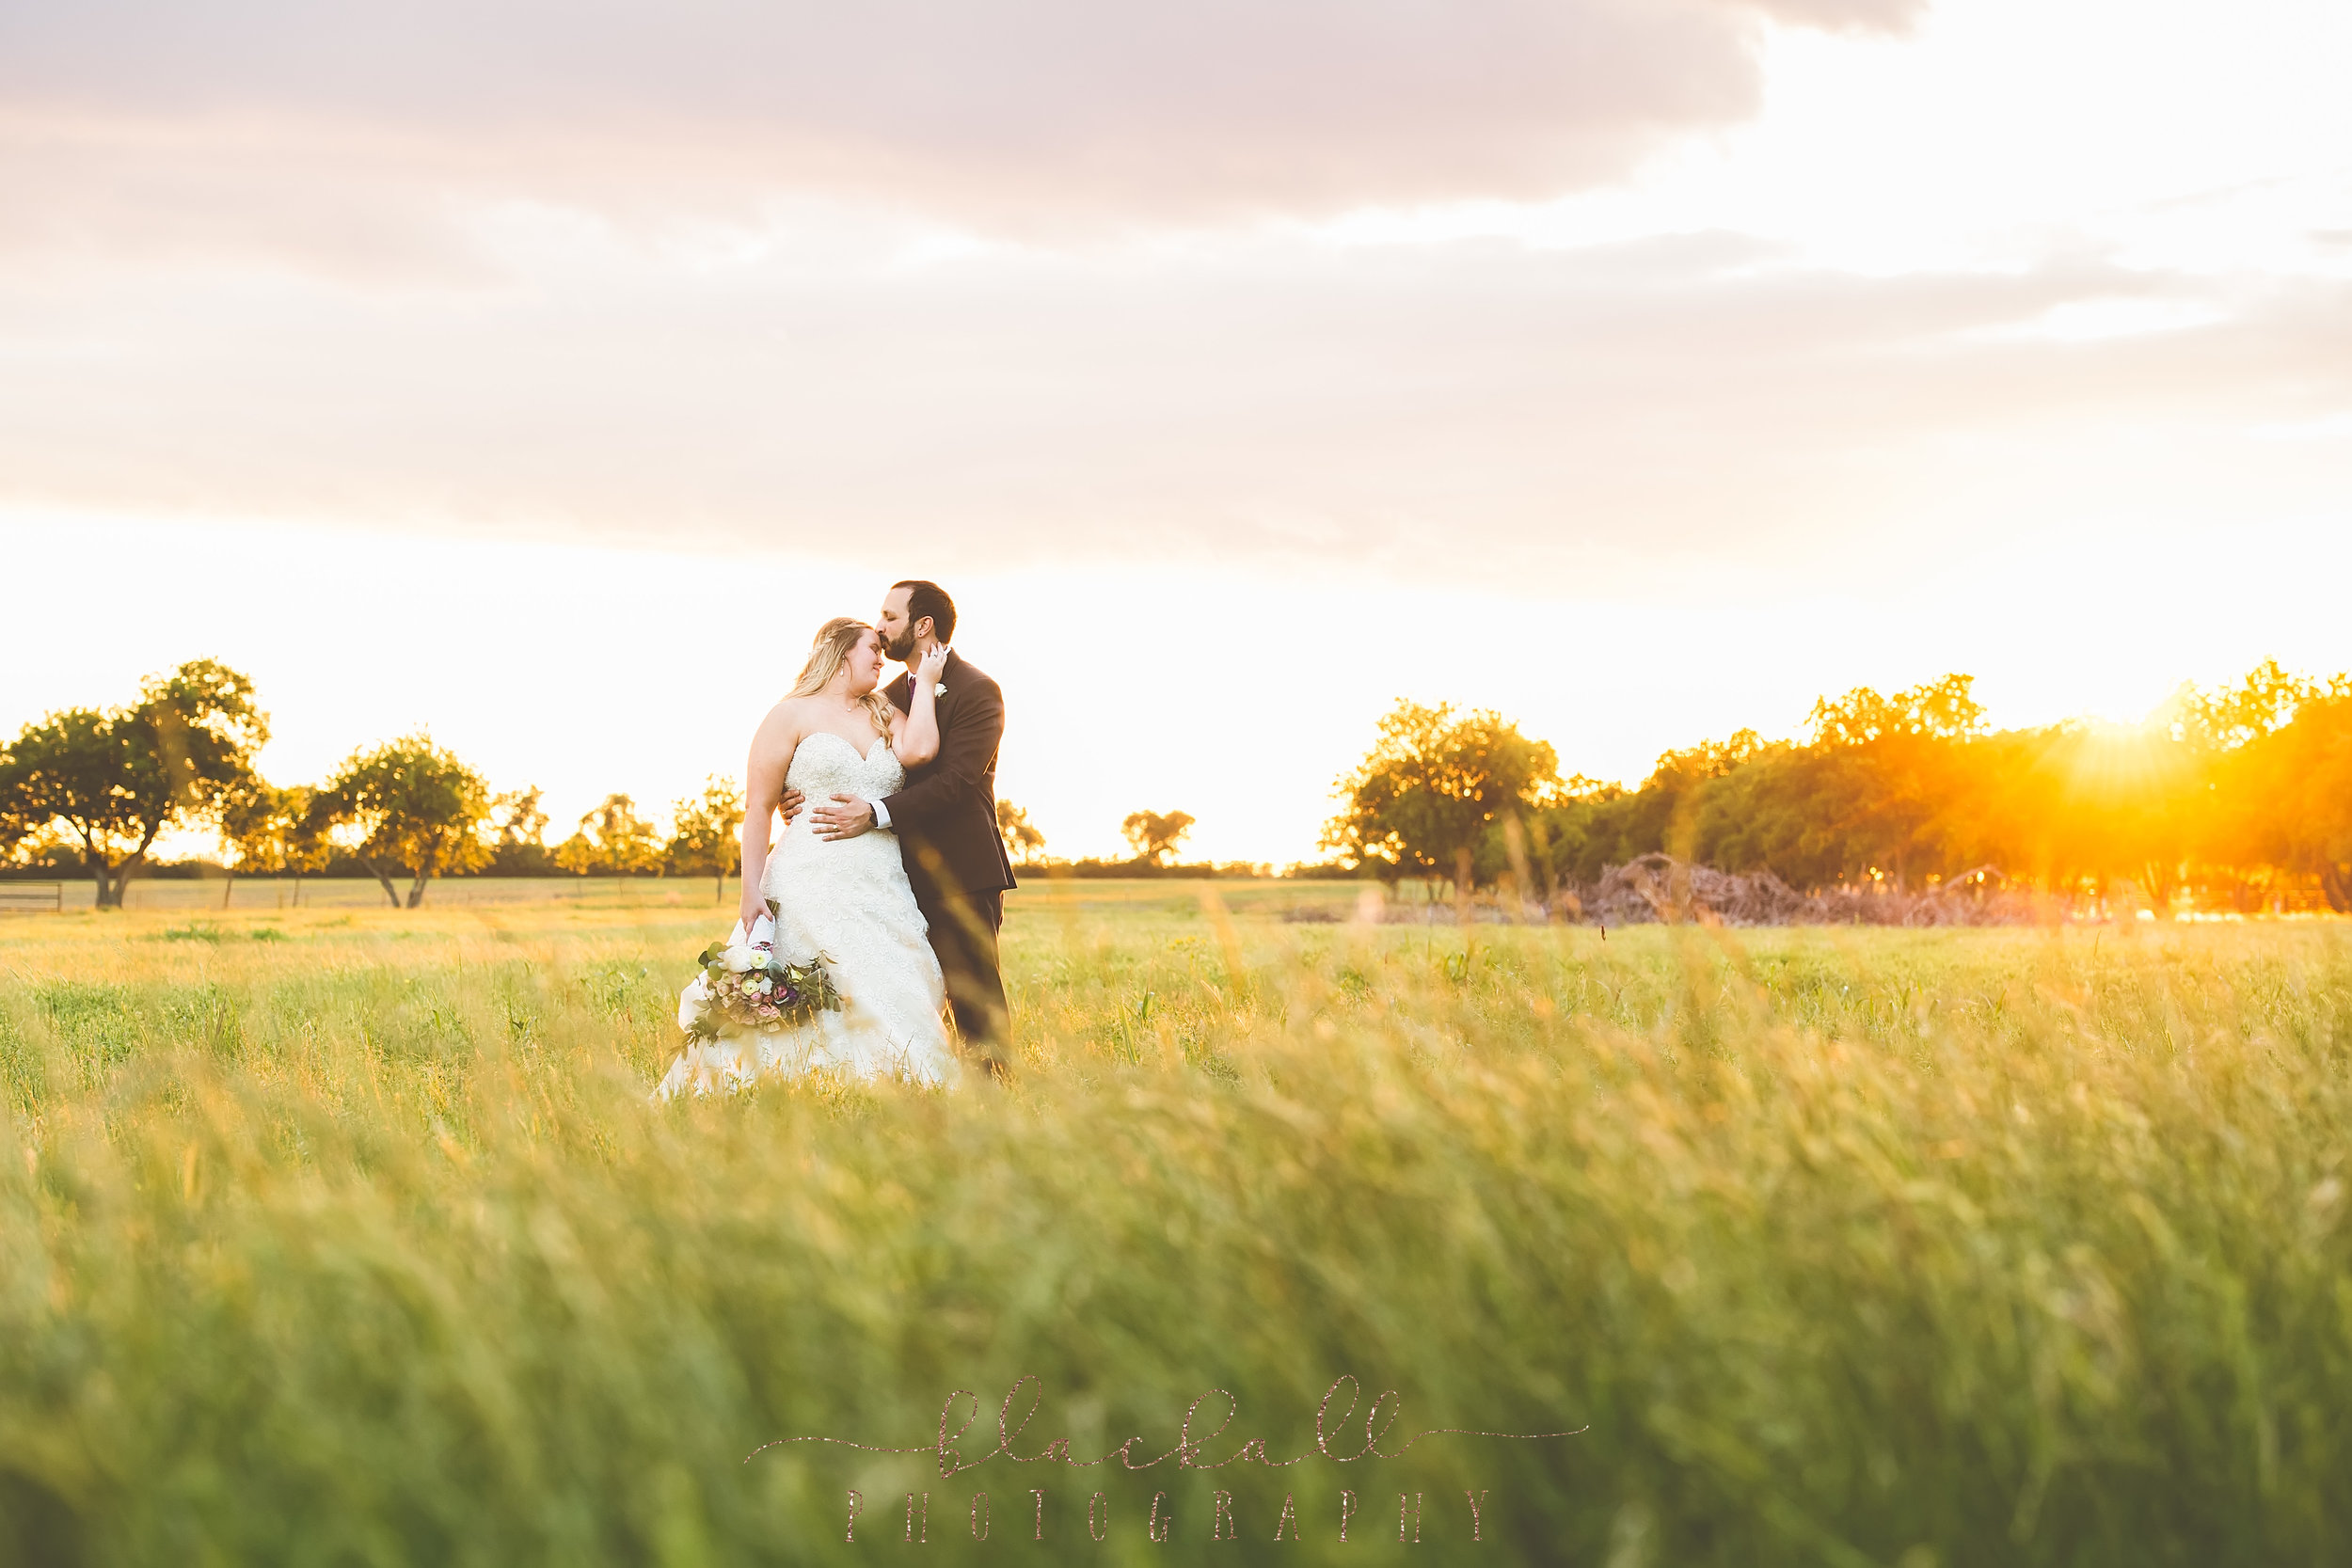 BUCHLER bride_ BlackallPhotography_38.JPG